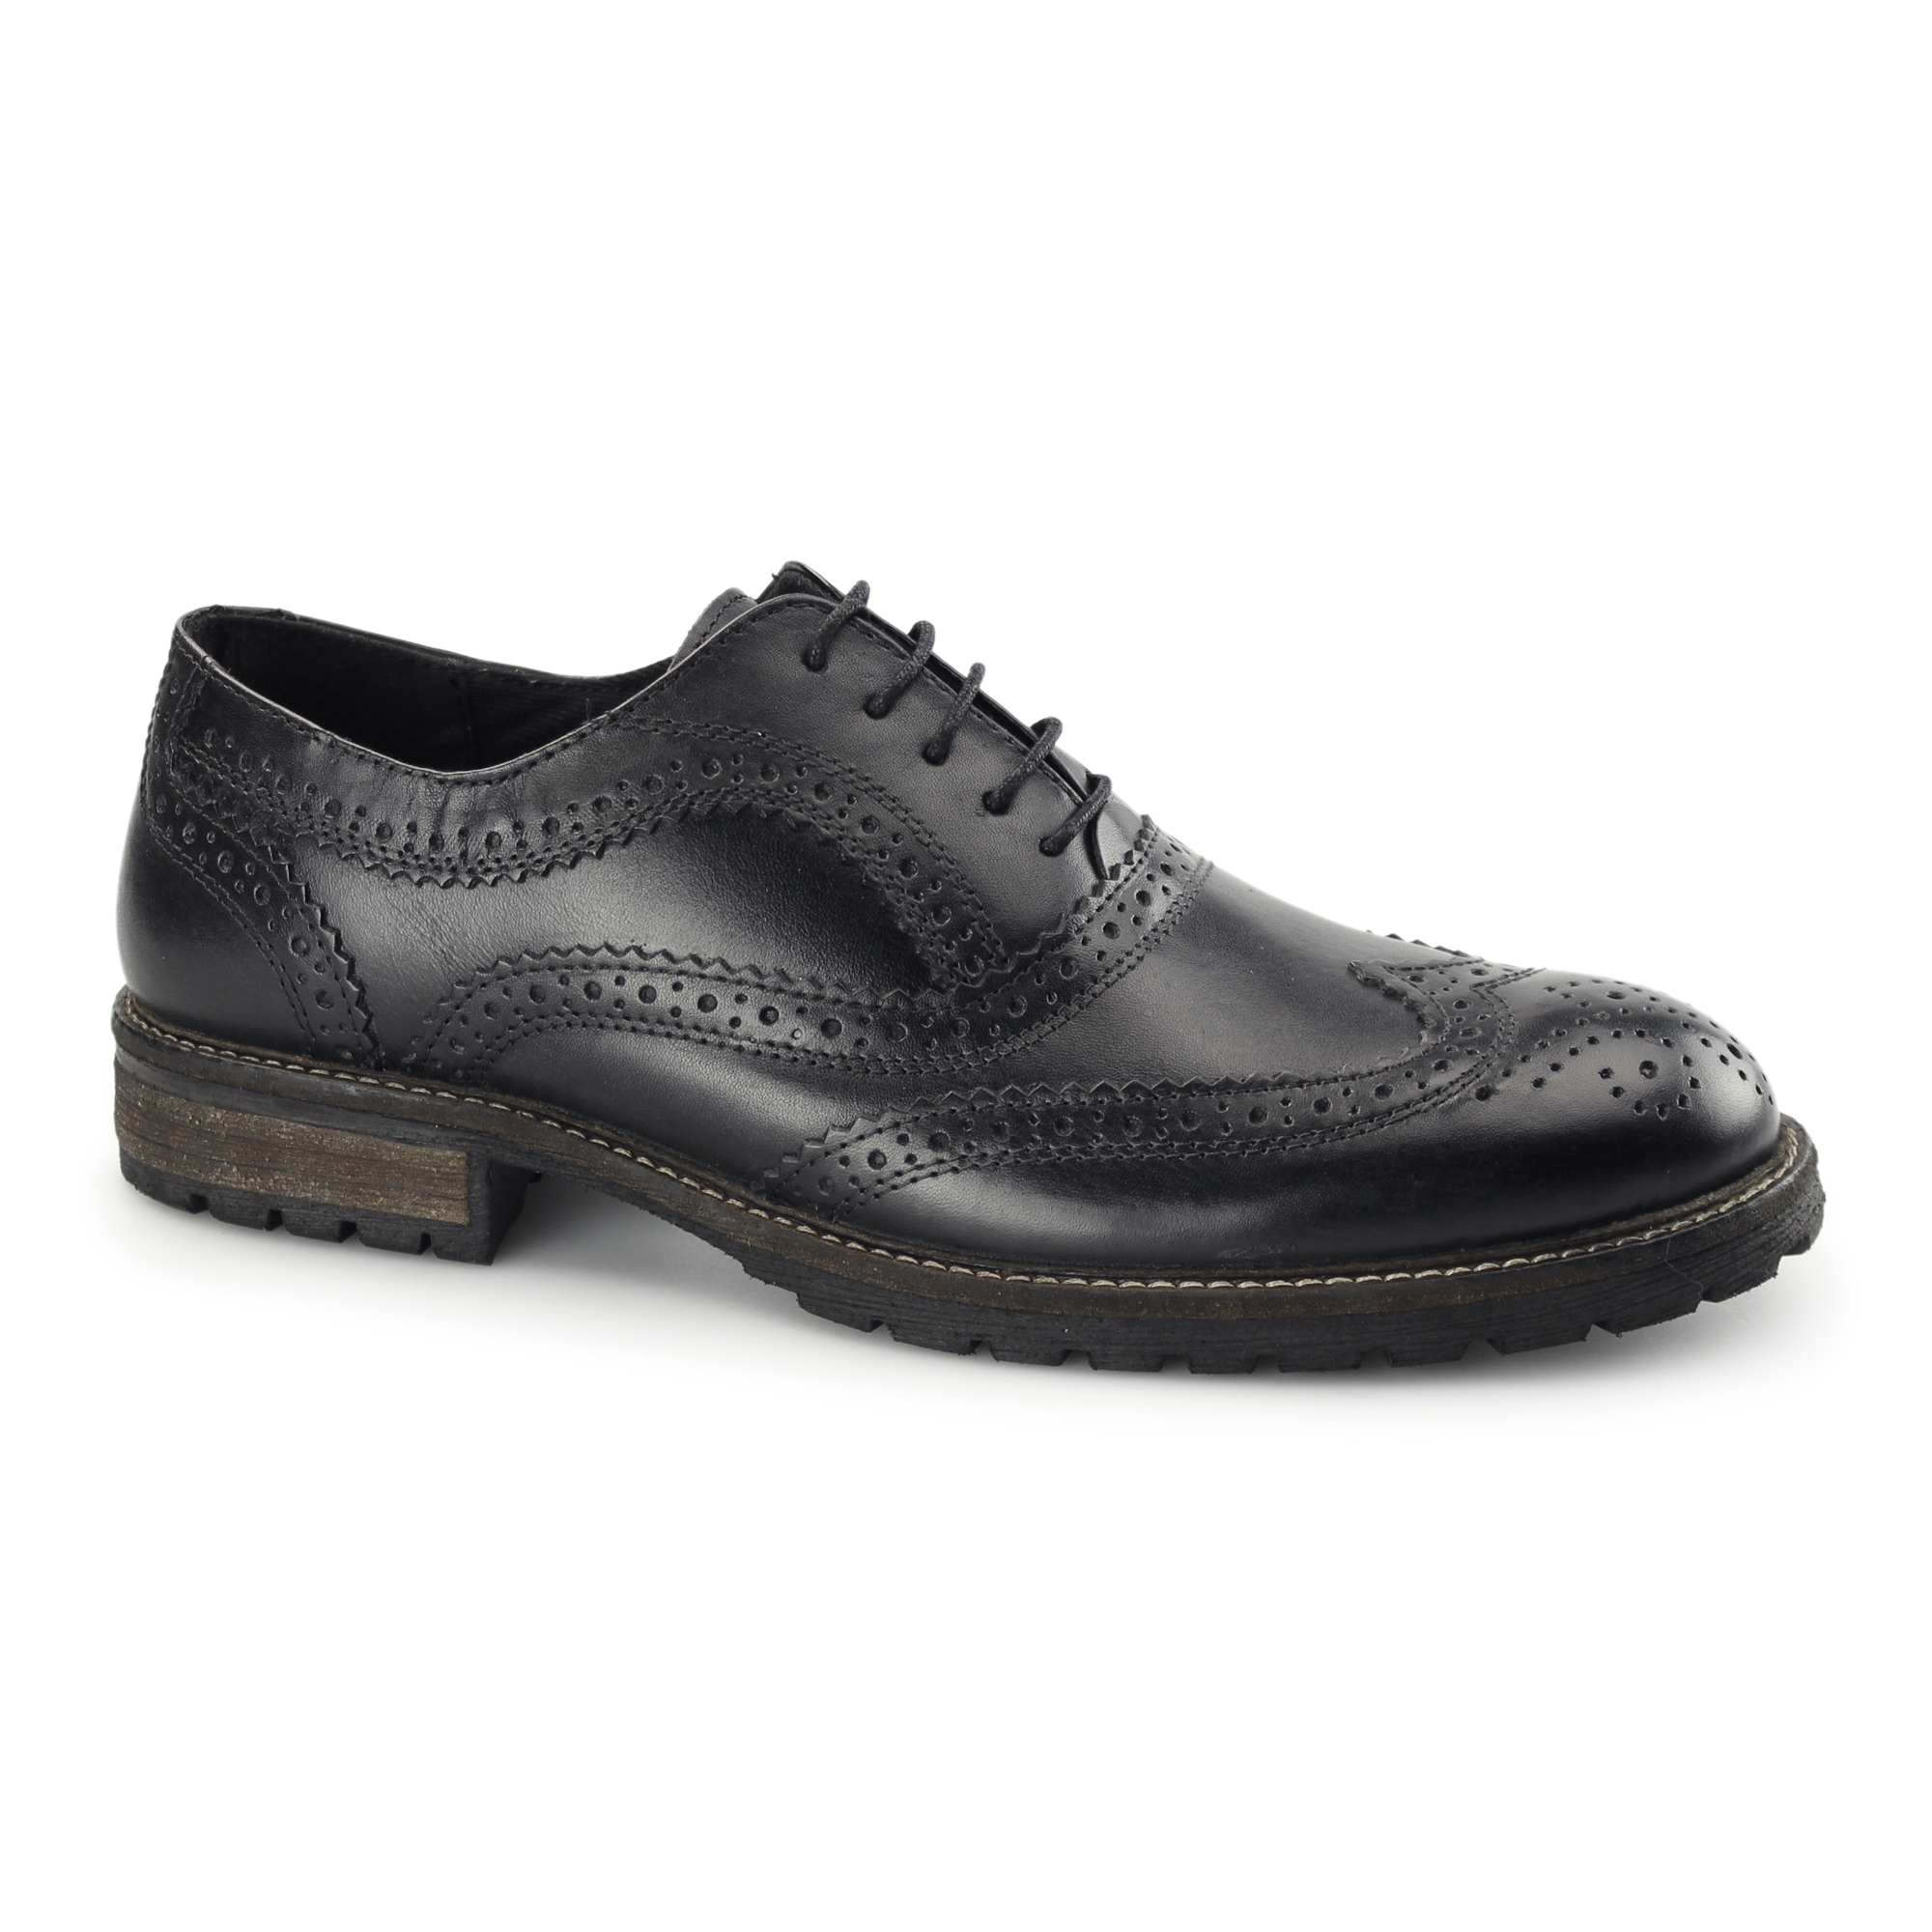 d865f9985952 Red Tape BARROW Mens Leather Smart Brogue Shoes Black | Buy At Shuperb